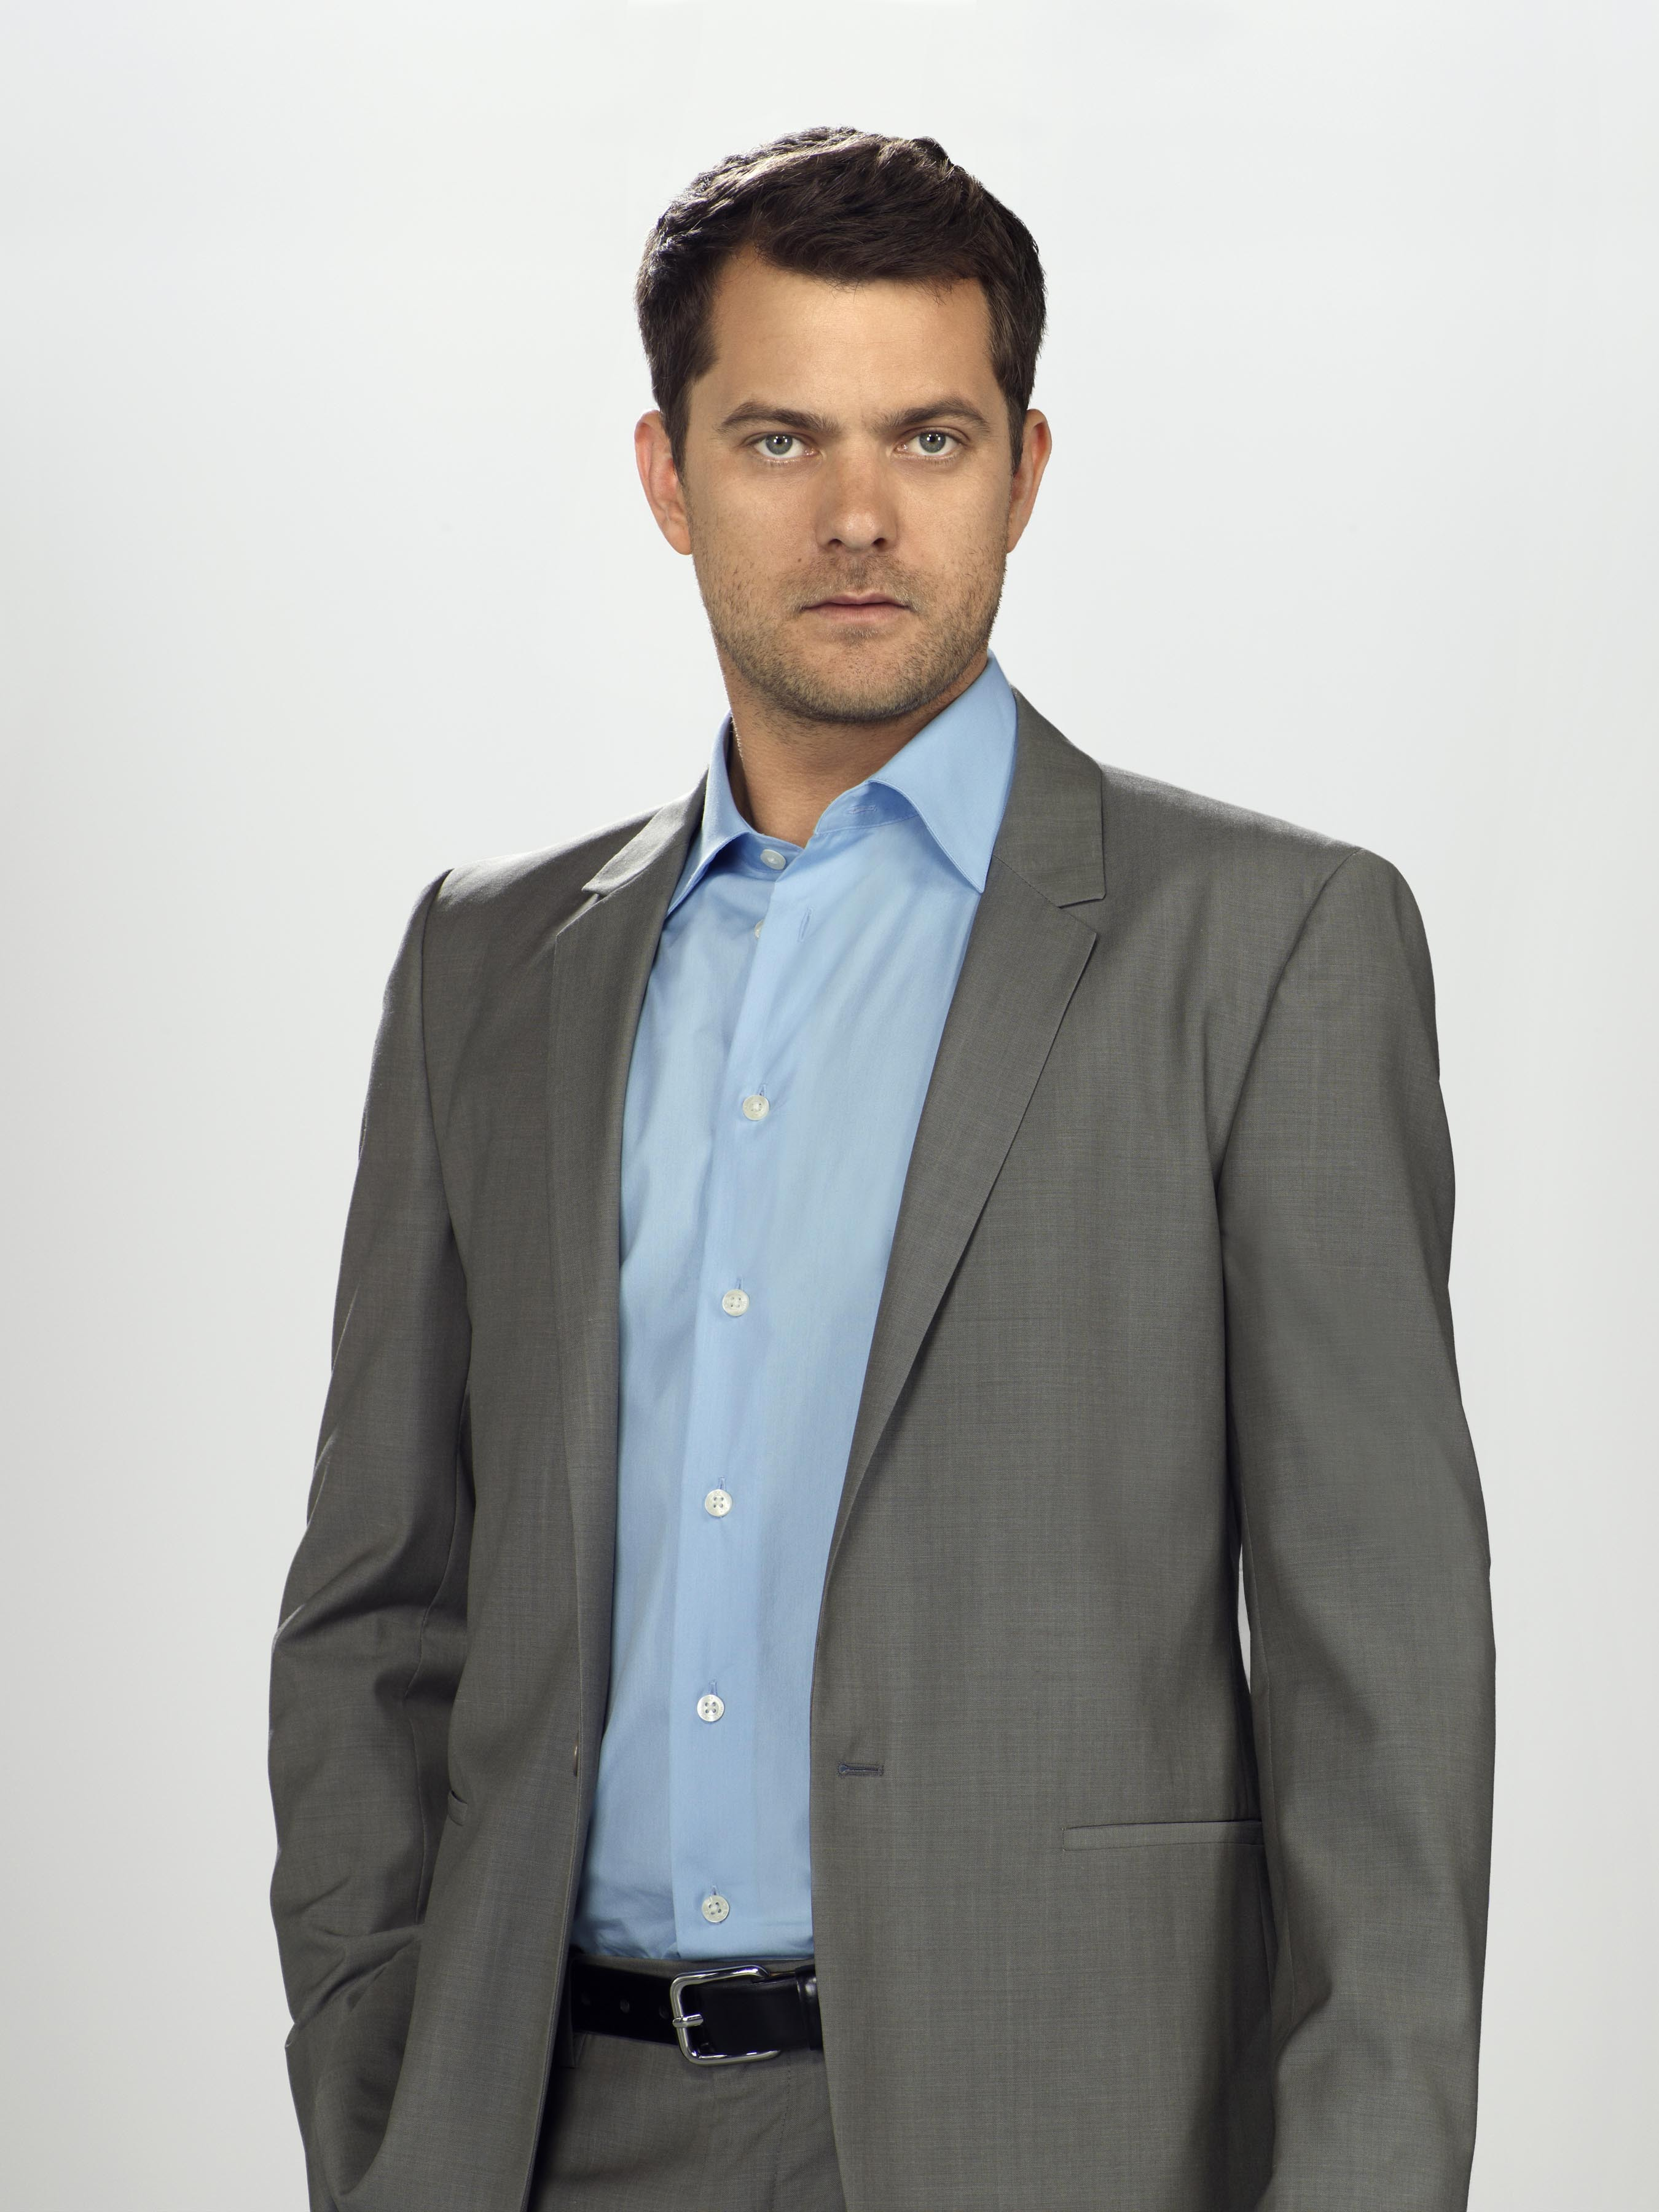 Joshua Jackson photo, pics, wallpaper - photo #